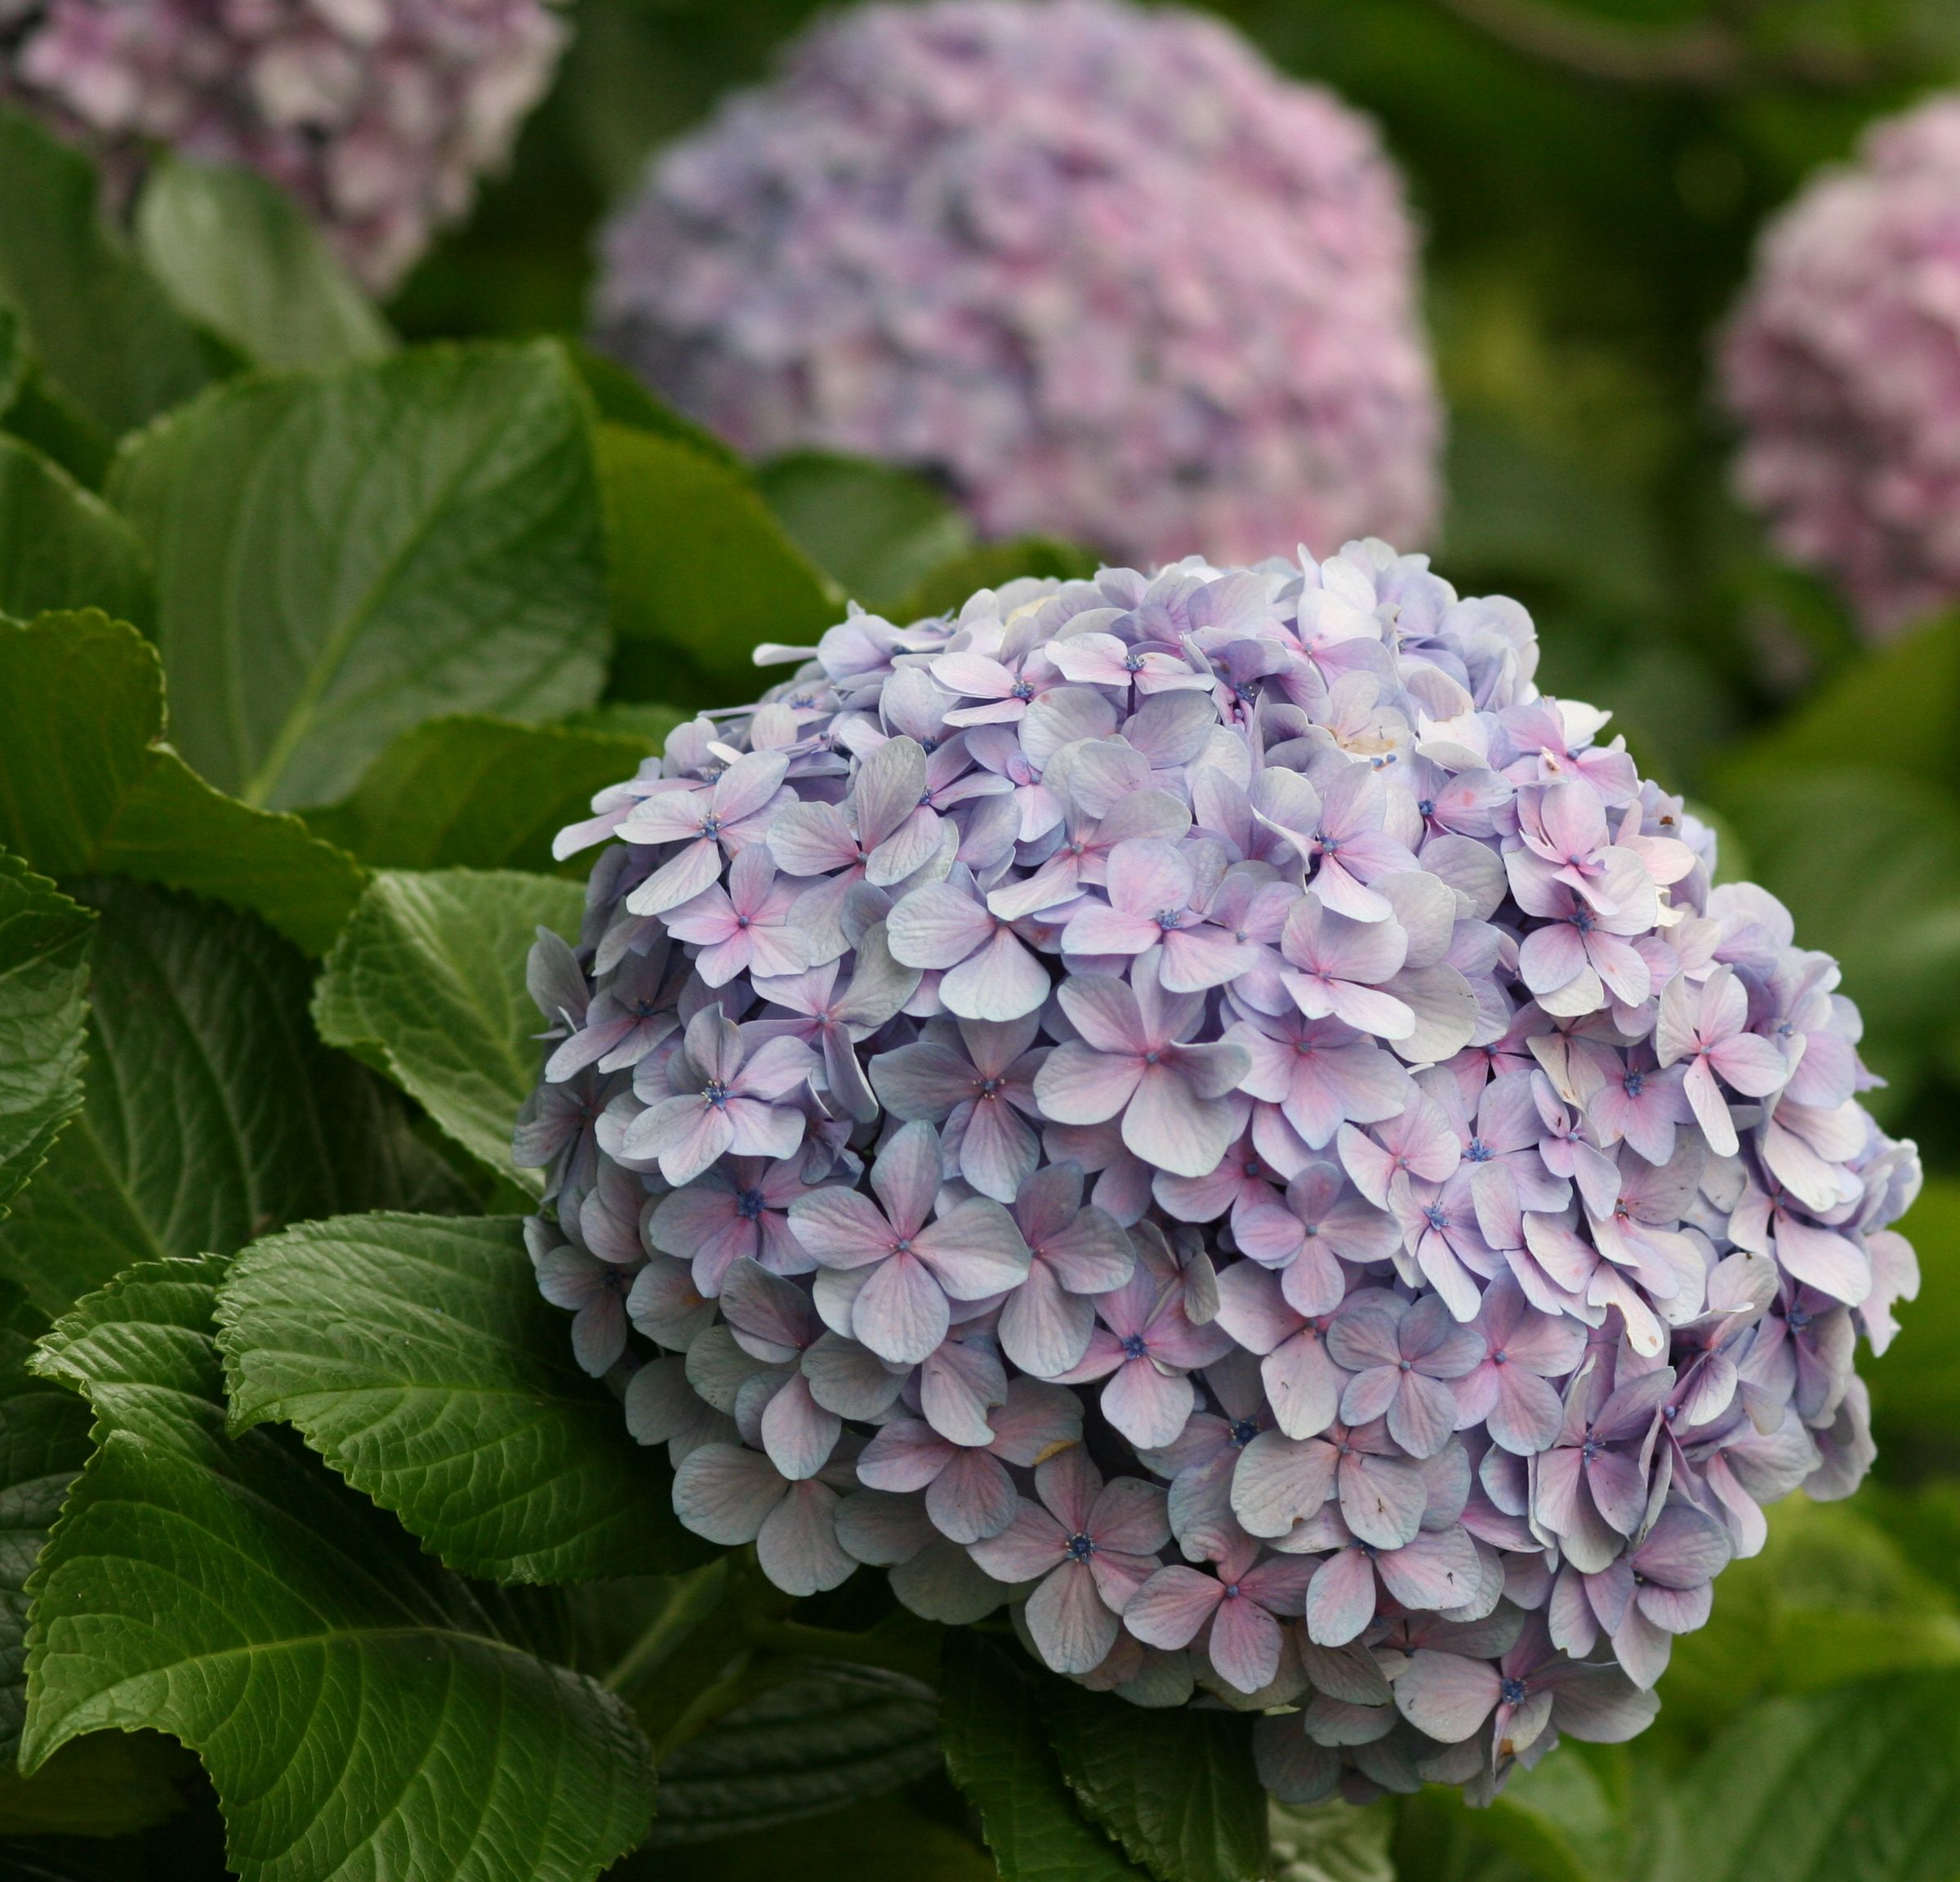 First Discovered In Japan The Name Hydrangea Comes From The Greek Hydor Meaning Water And Angos Meaning Jar Or Vess Hydrangea Flowers Beautiful Flowers